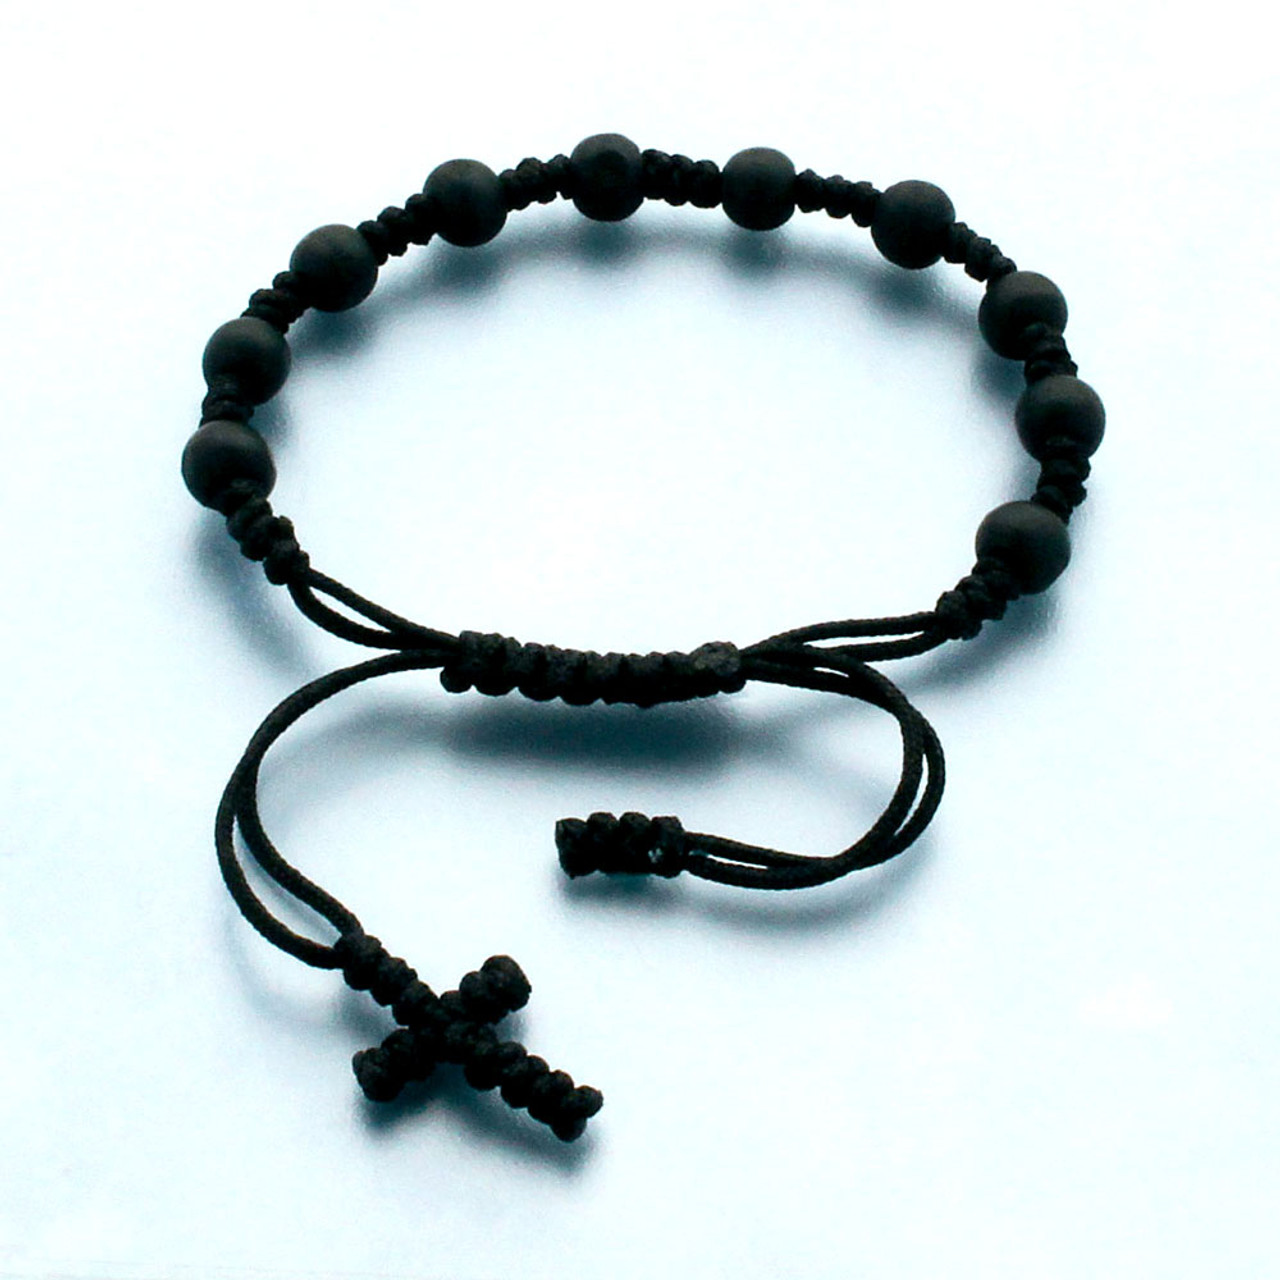 Black Rosary Bracelet with Knotted Cord